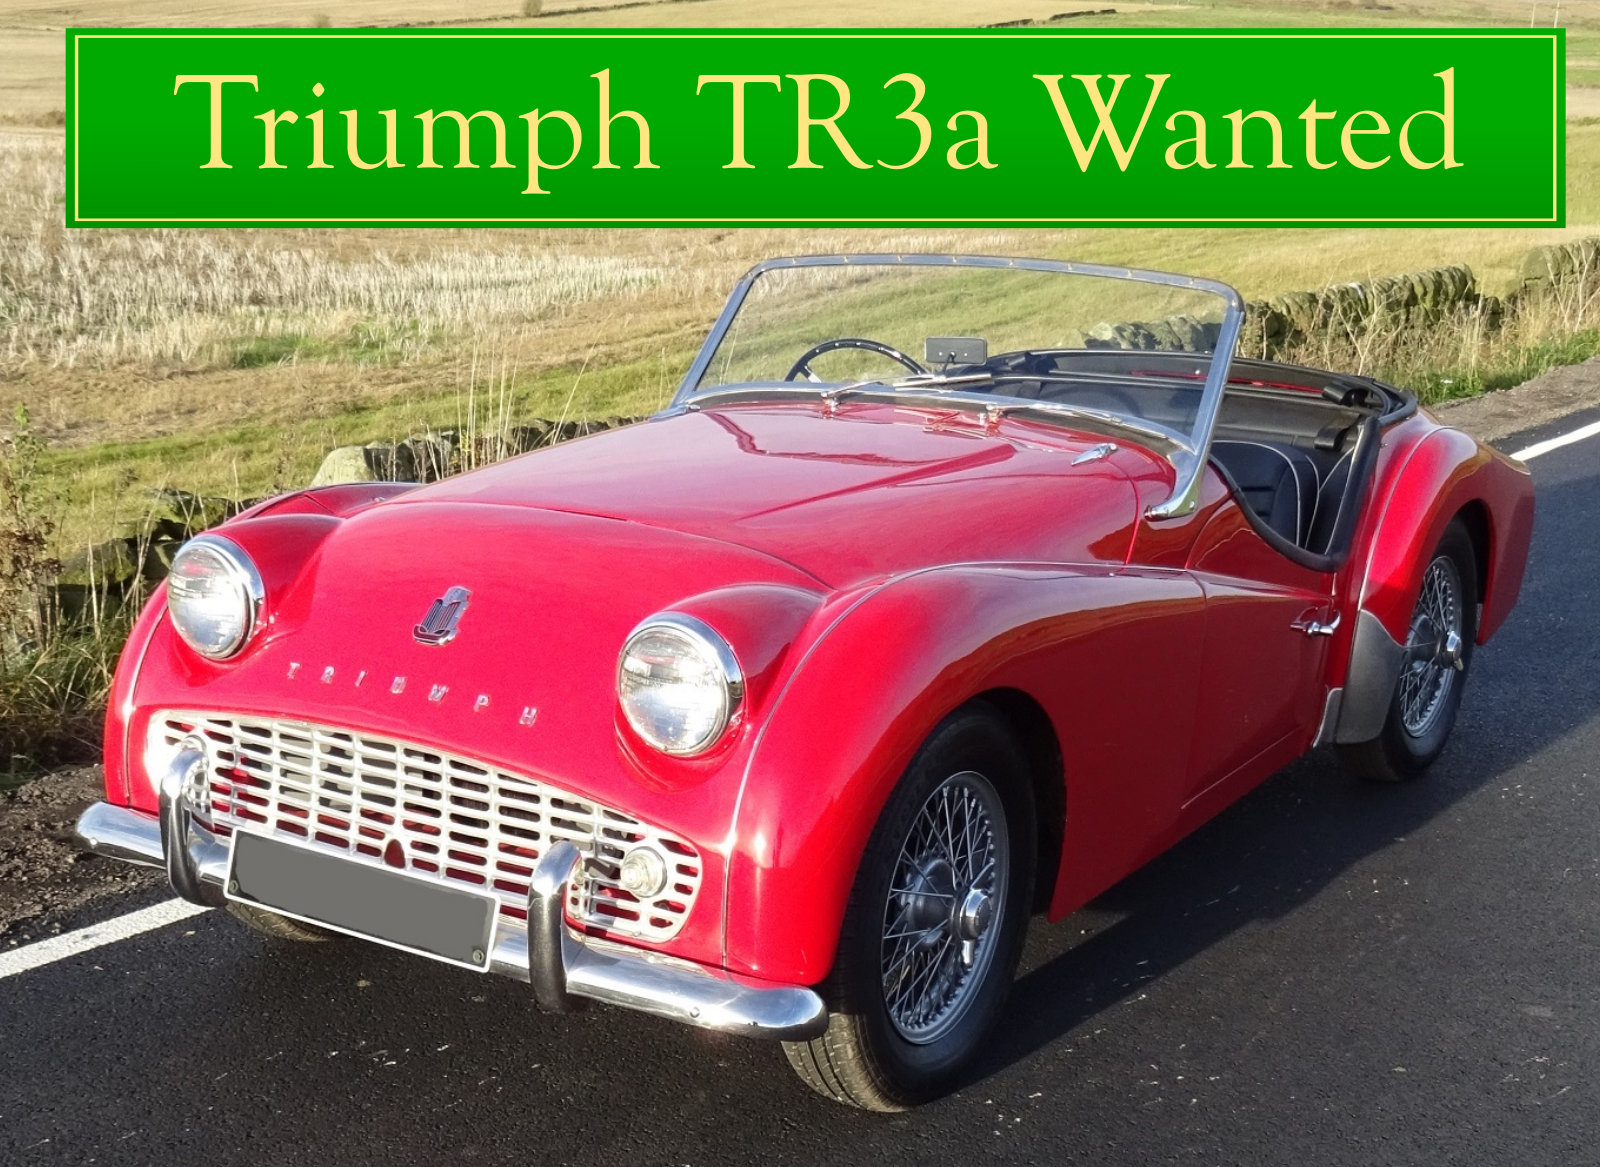 1956  TR3a WANTED, CLASSIC CARS WANTED, QUICK PAYMENT Wanted (picture 1 of 6)